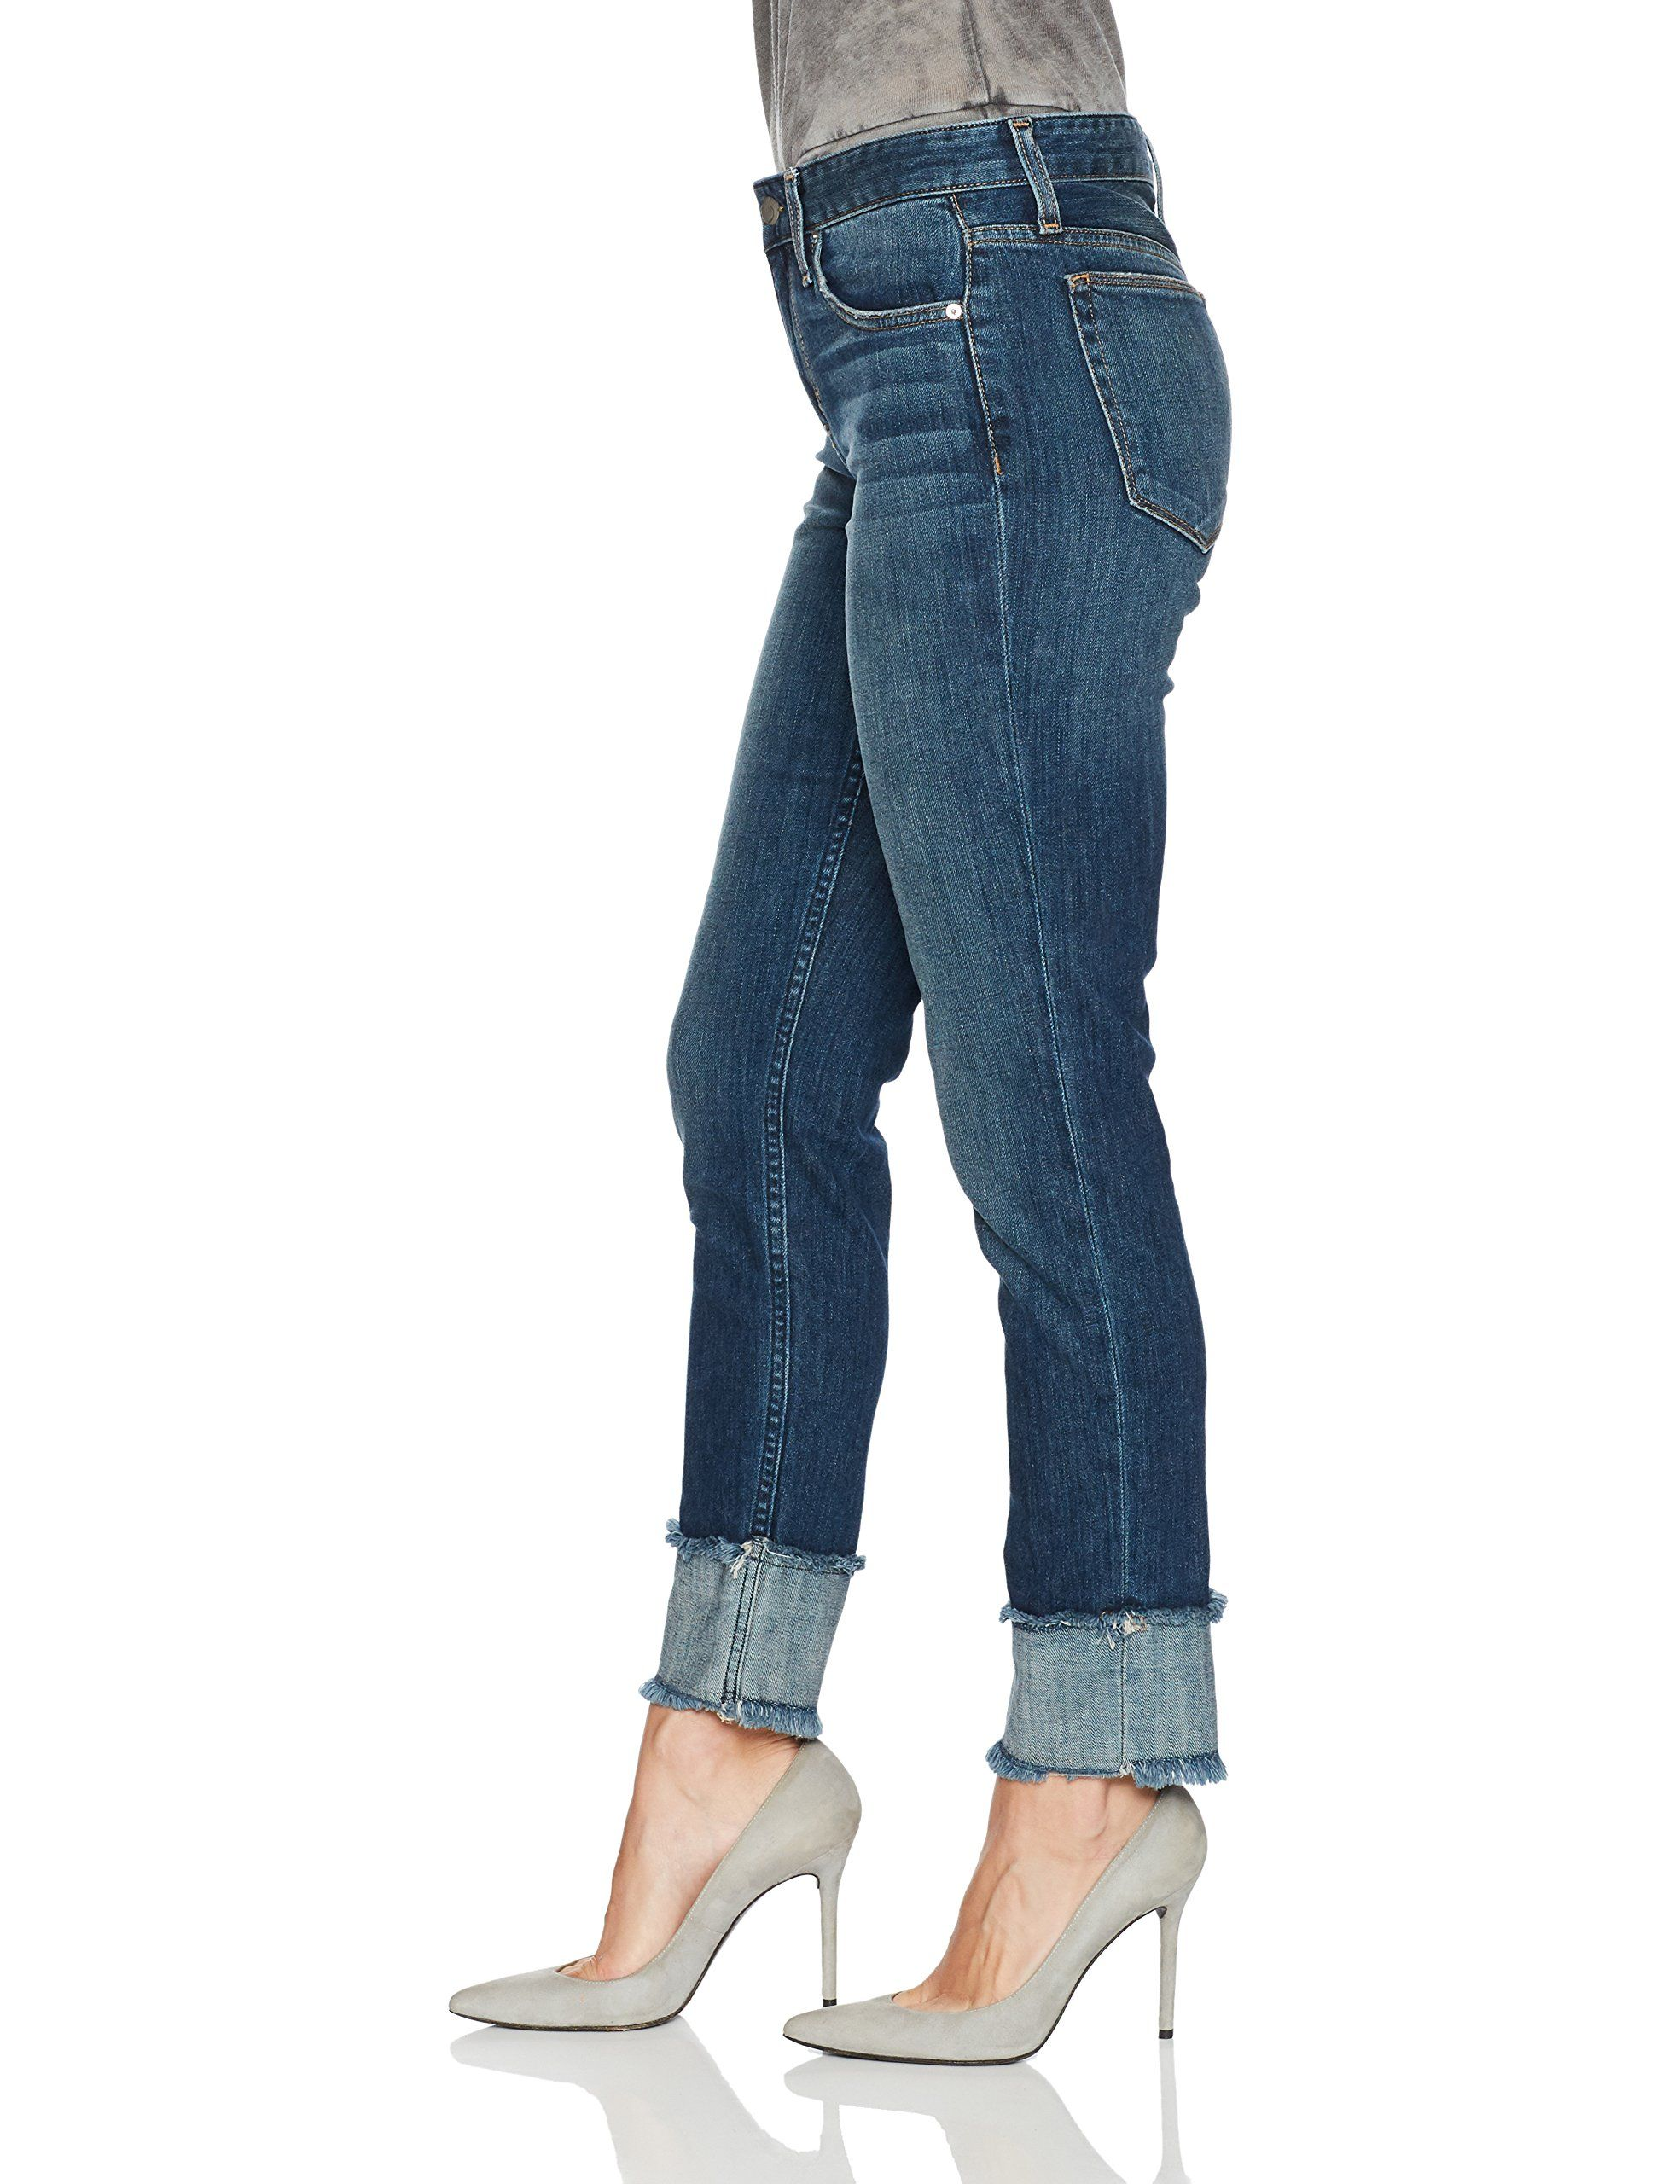 Joes Jeans Womens Smith Midrise Straight Crop Ankle Jean